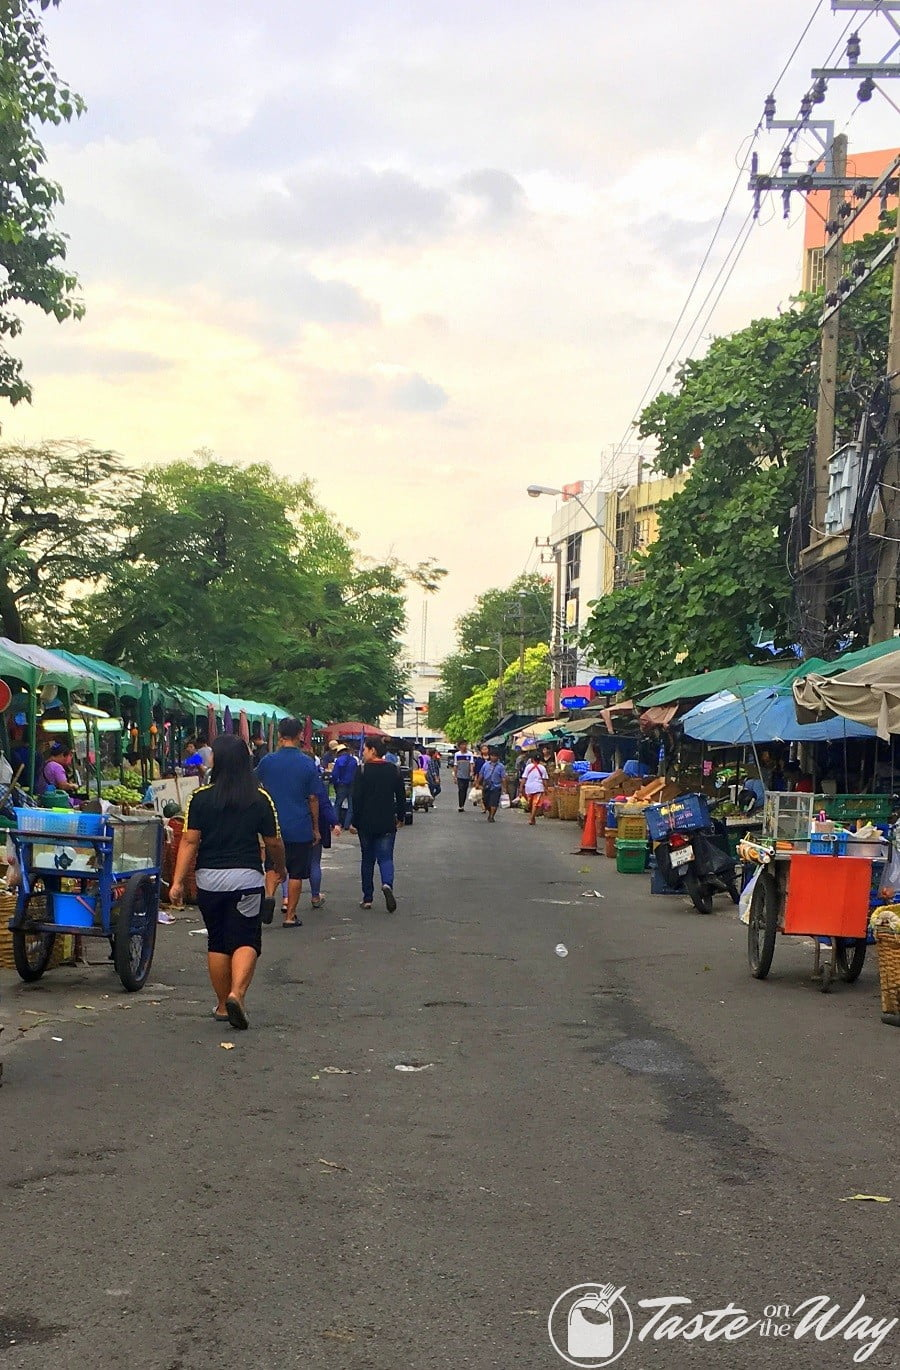 Top 10 Best Things to Do in Bangkok - Visiting a street market is just one of the top #thingstodo in #Bangkok, #Thailand. Check out for more! #travel #photography @tasteontheway